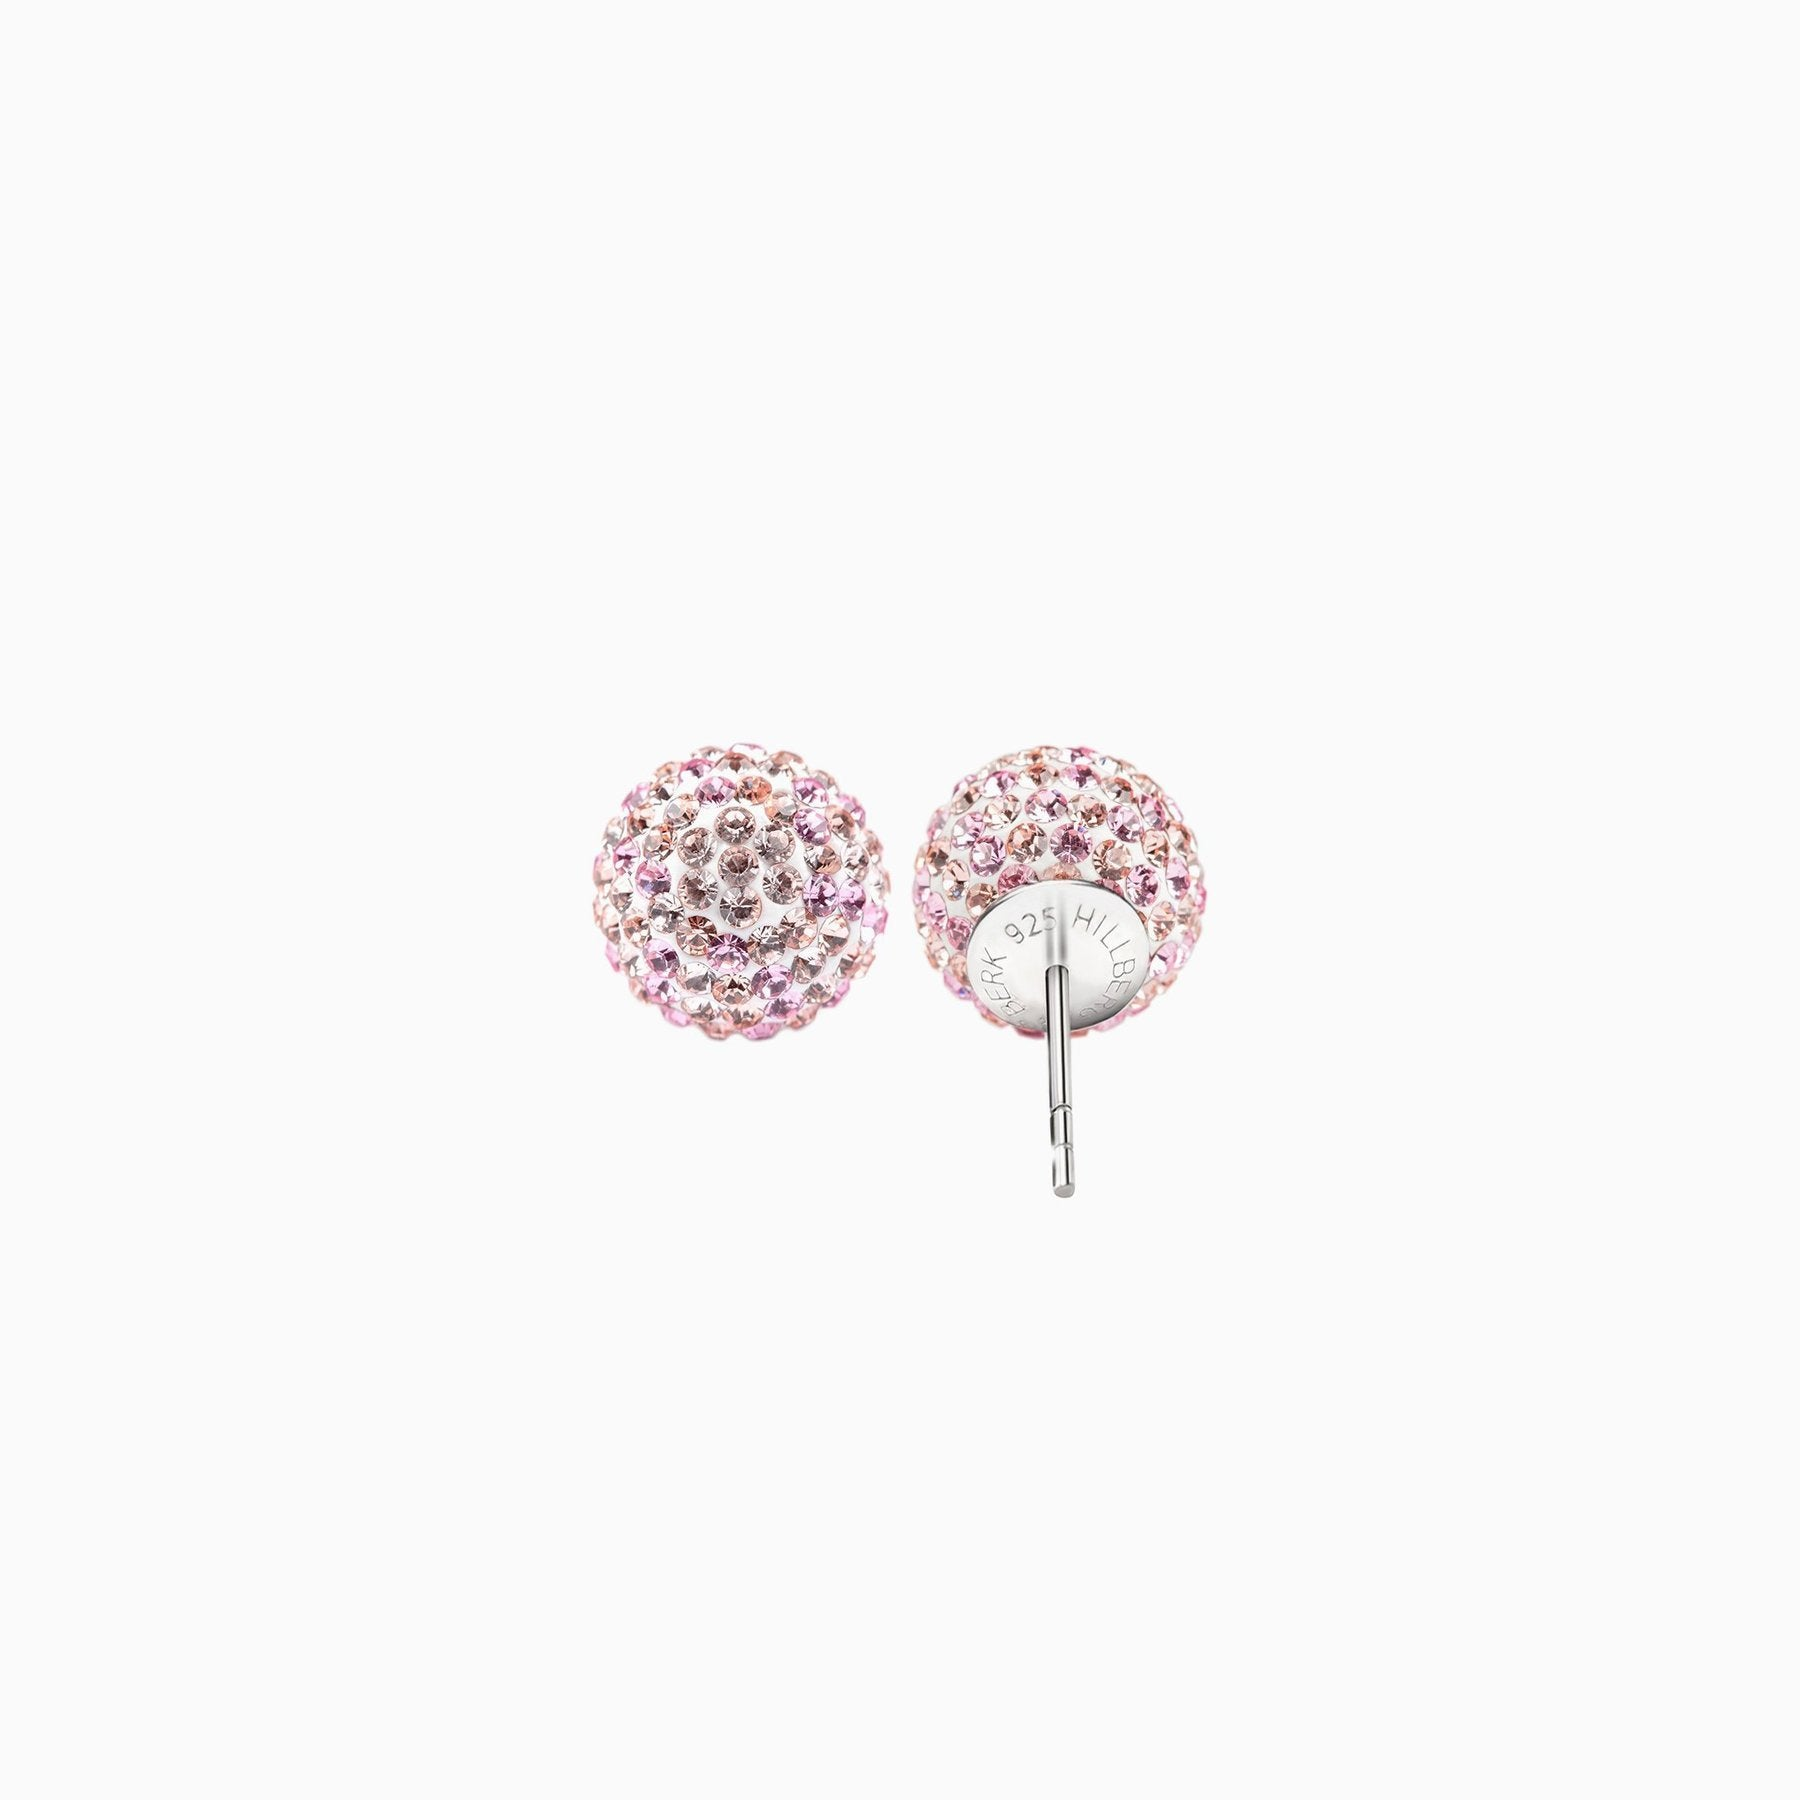 H&B Sparkle Ball™ Stud Earrings - 12mm Pink Champagne